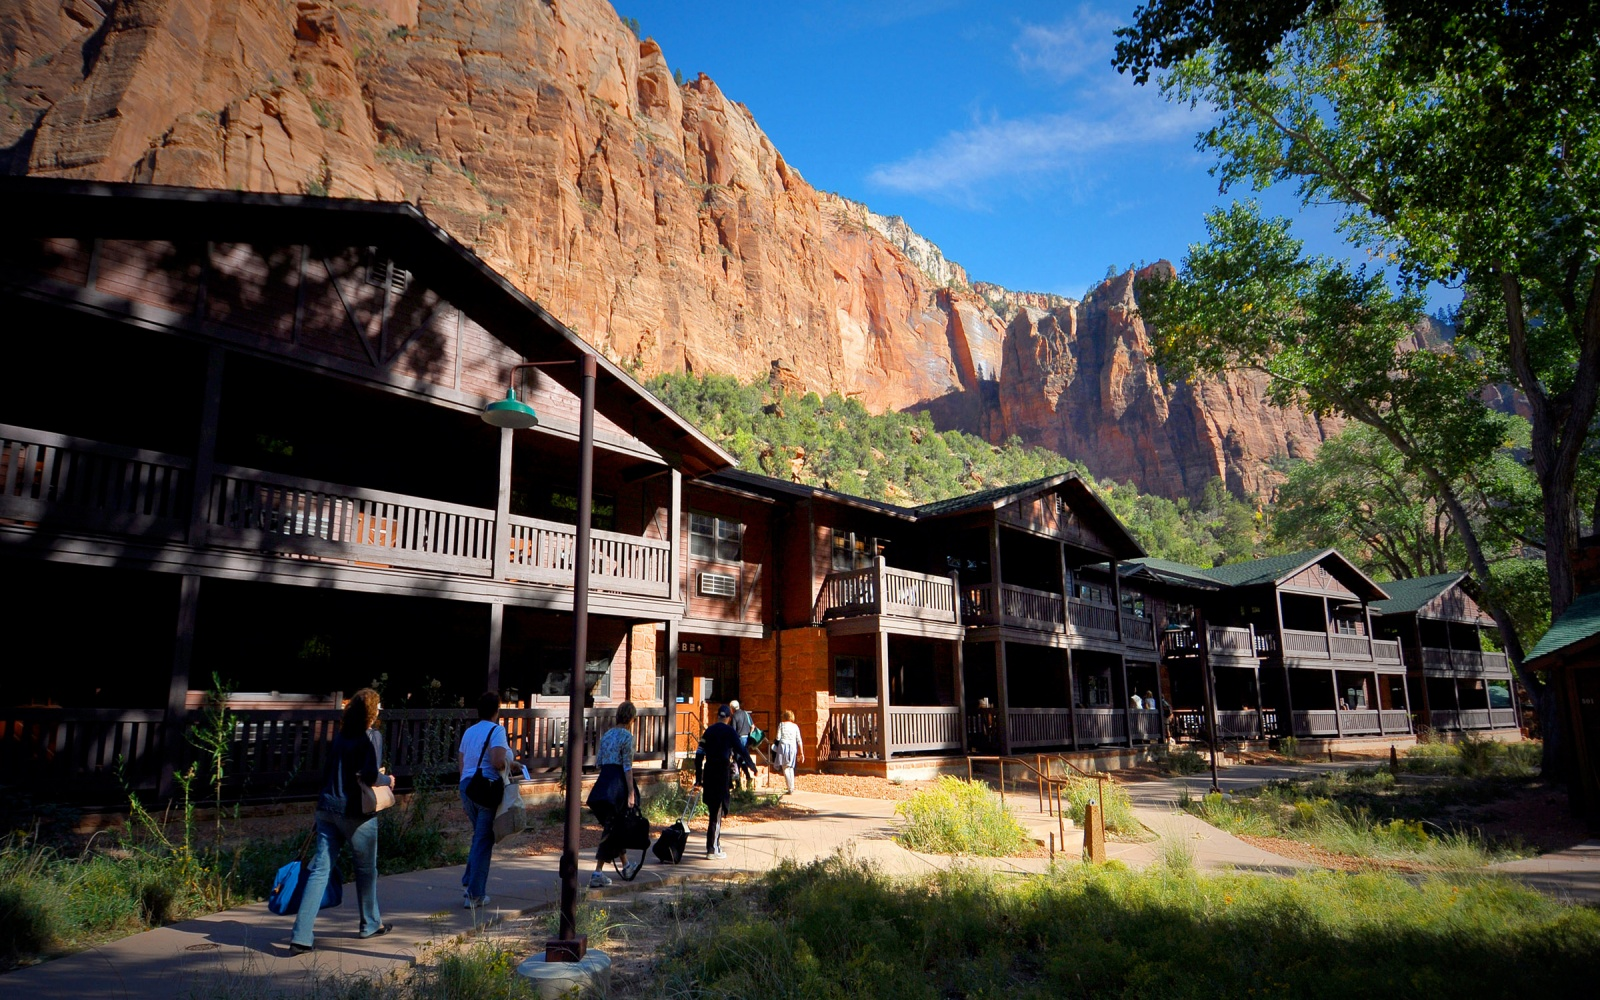 Zion Lodge, Zion National Park, UT